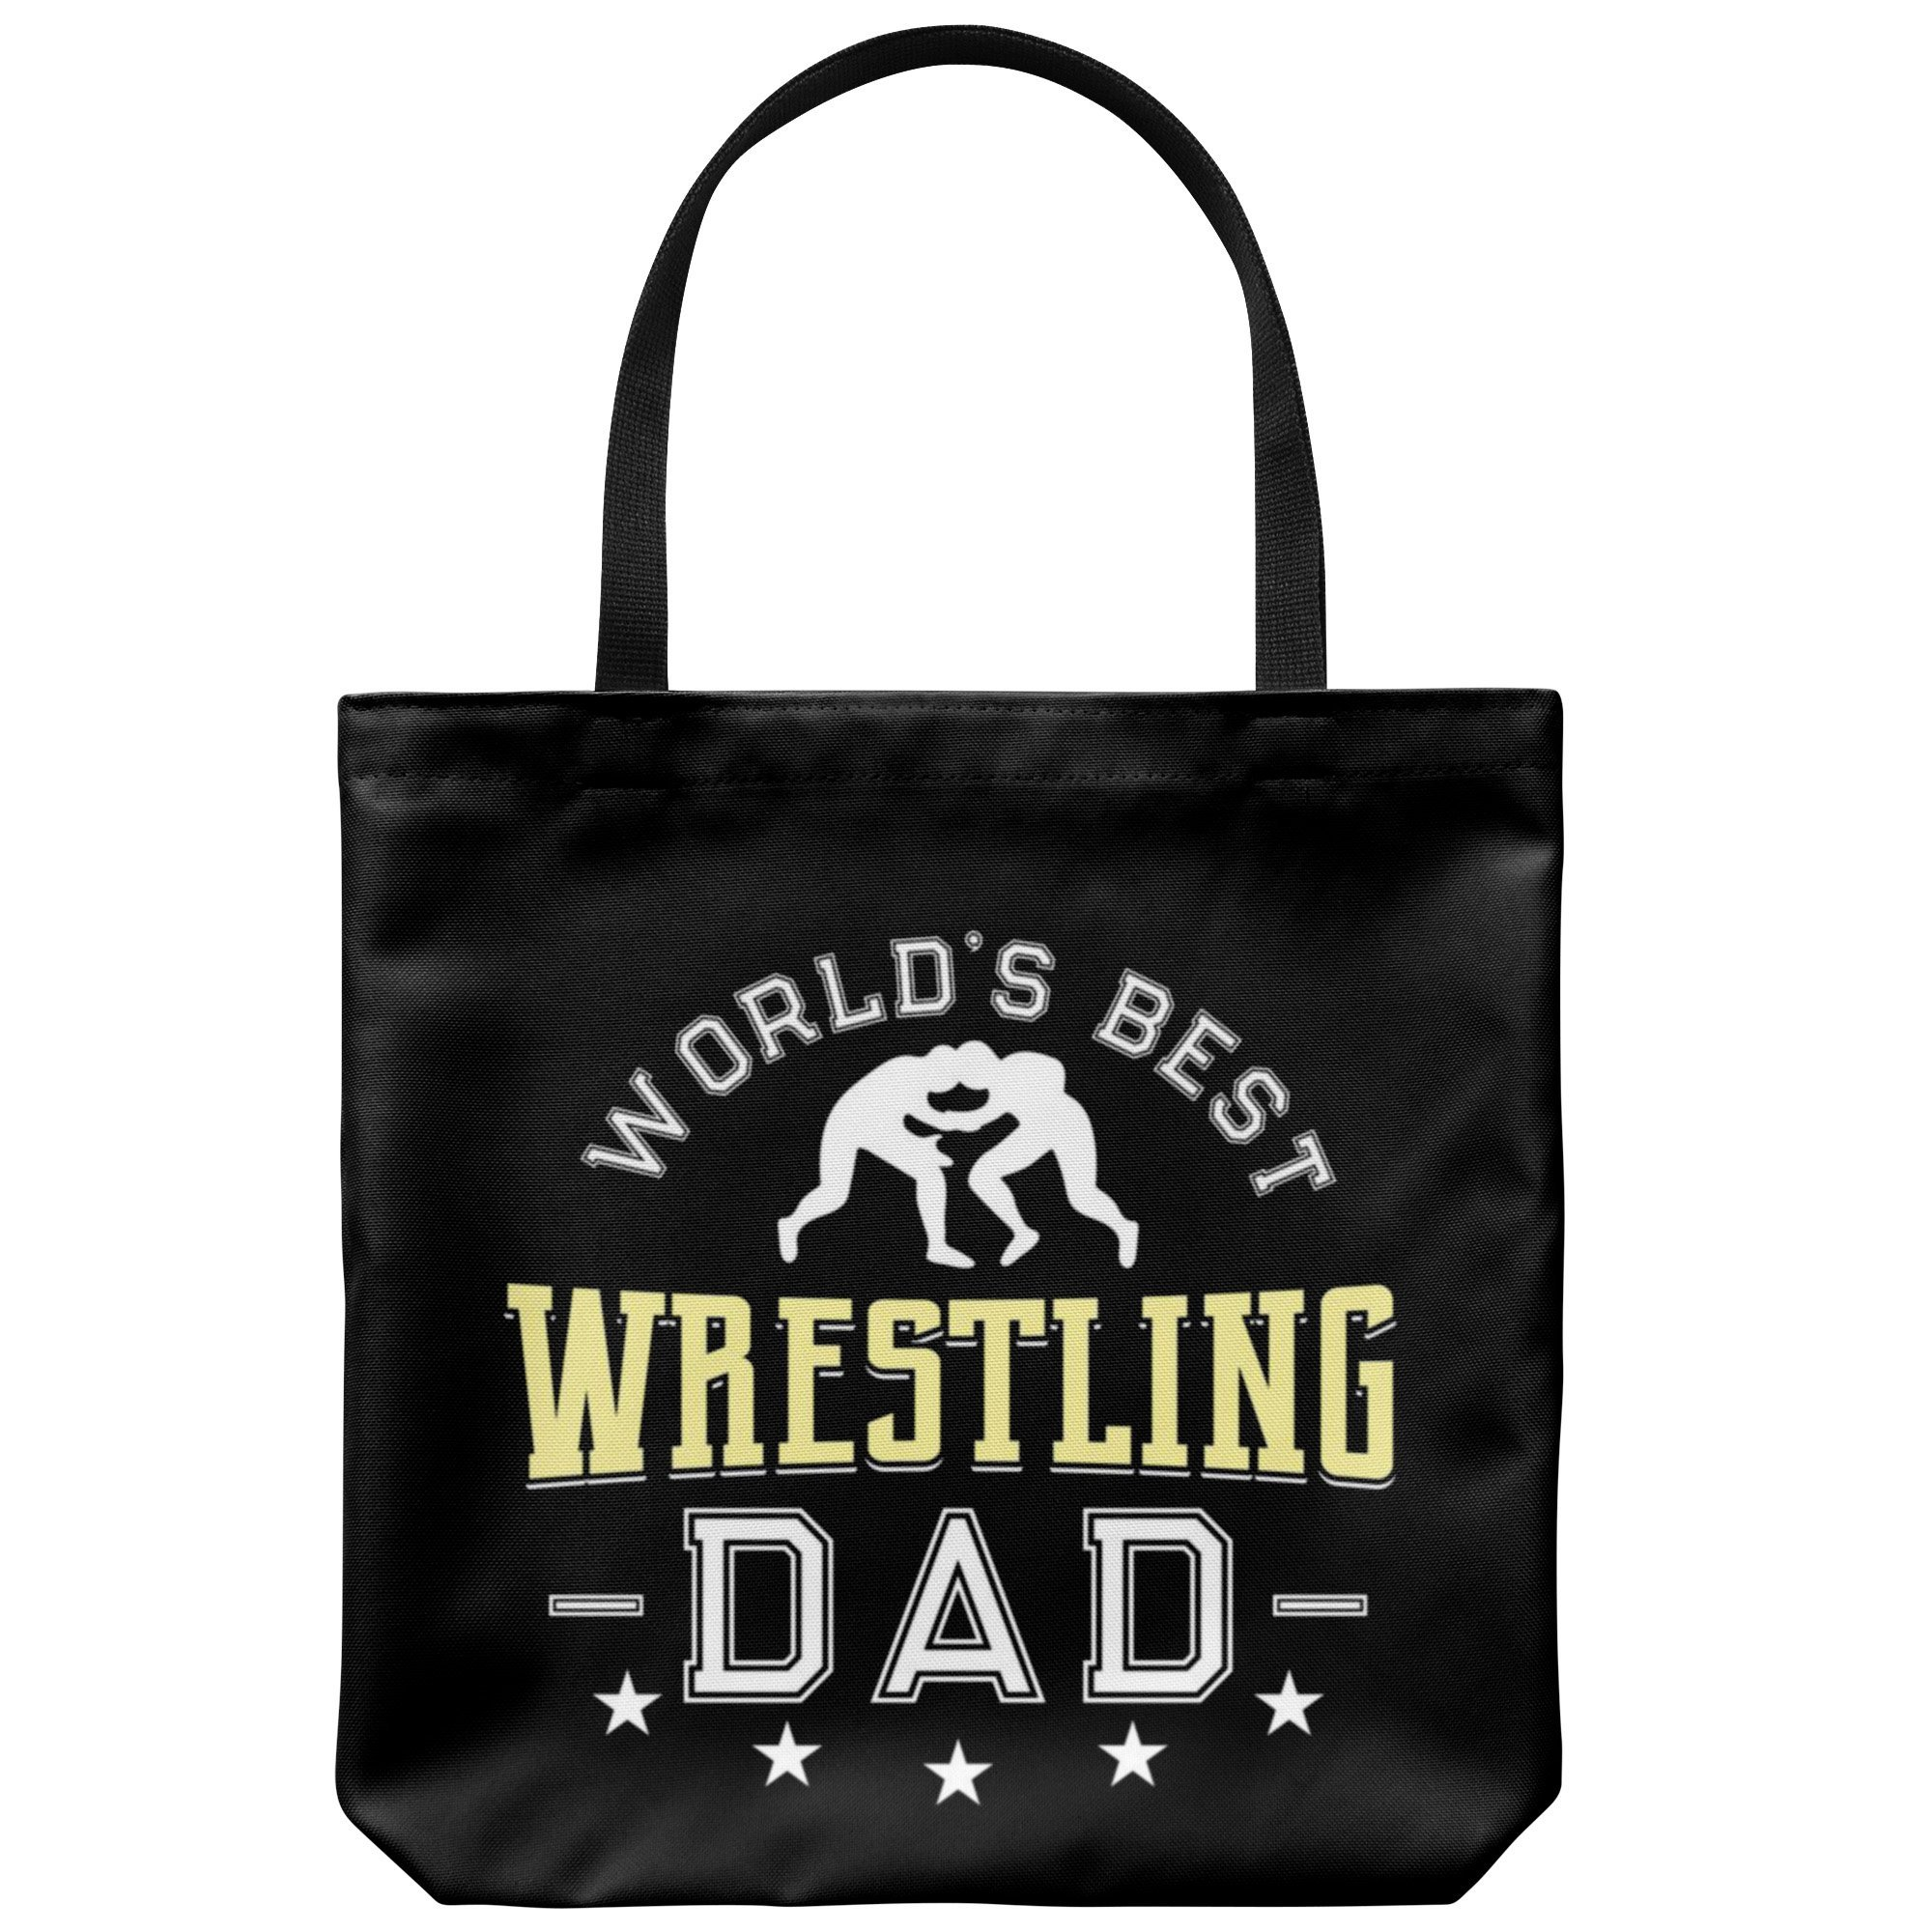 Wrestling Dad Canvas Tote Bag Funny Father's Day Wrestler World's Best